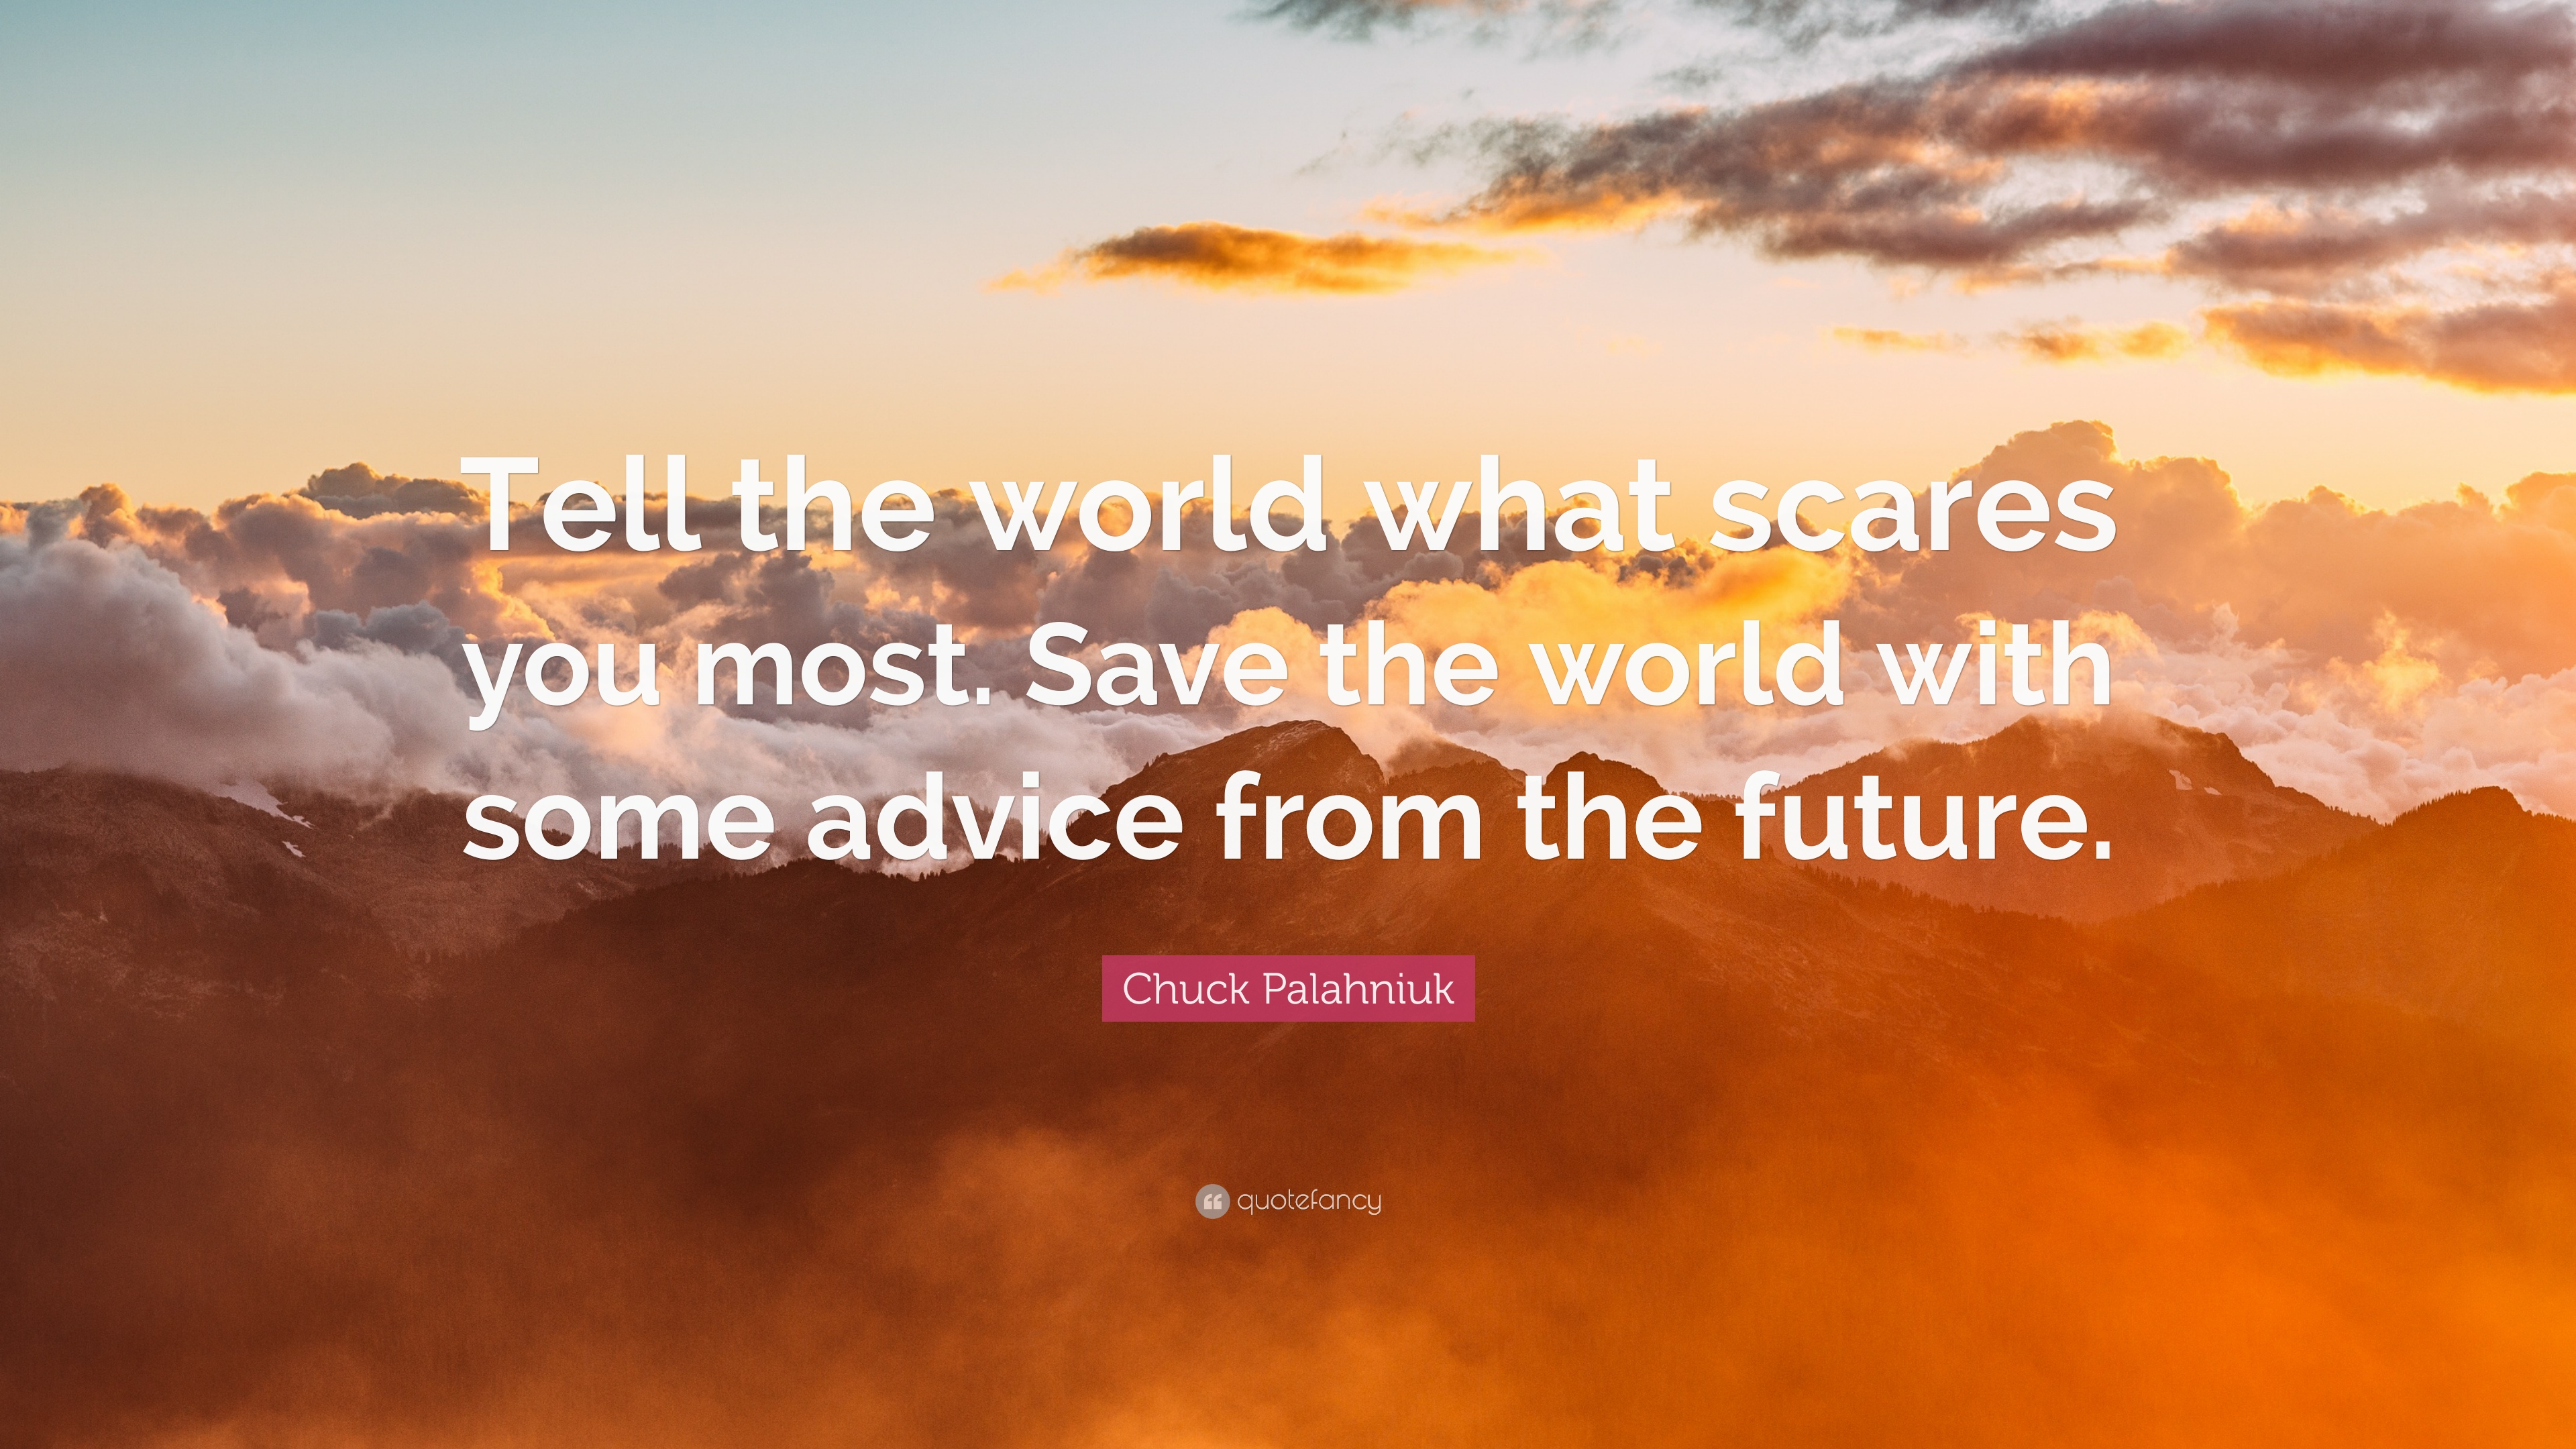 10. Talking about the future scares you